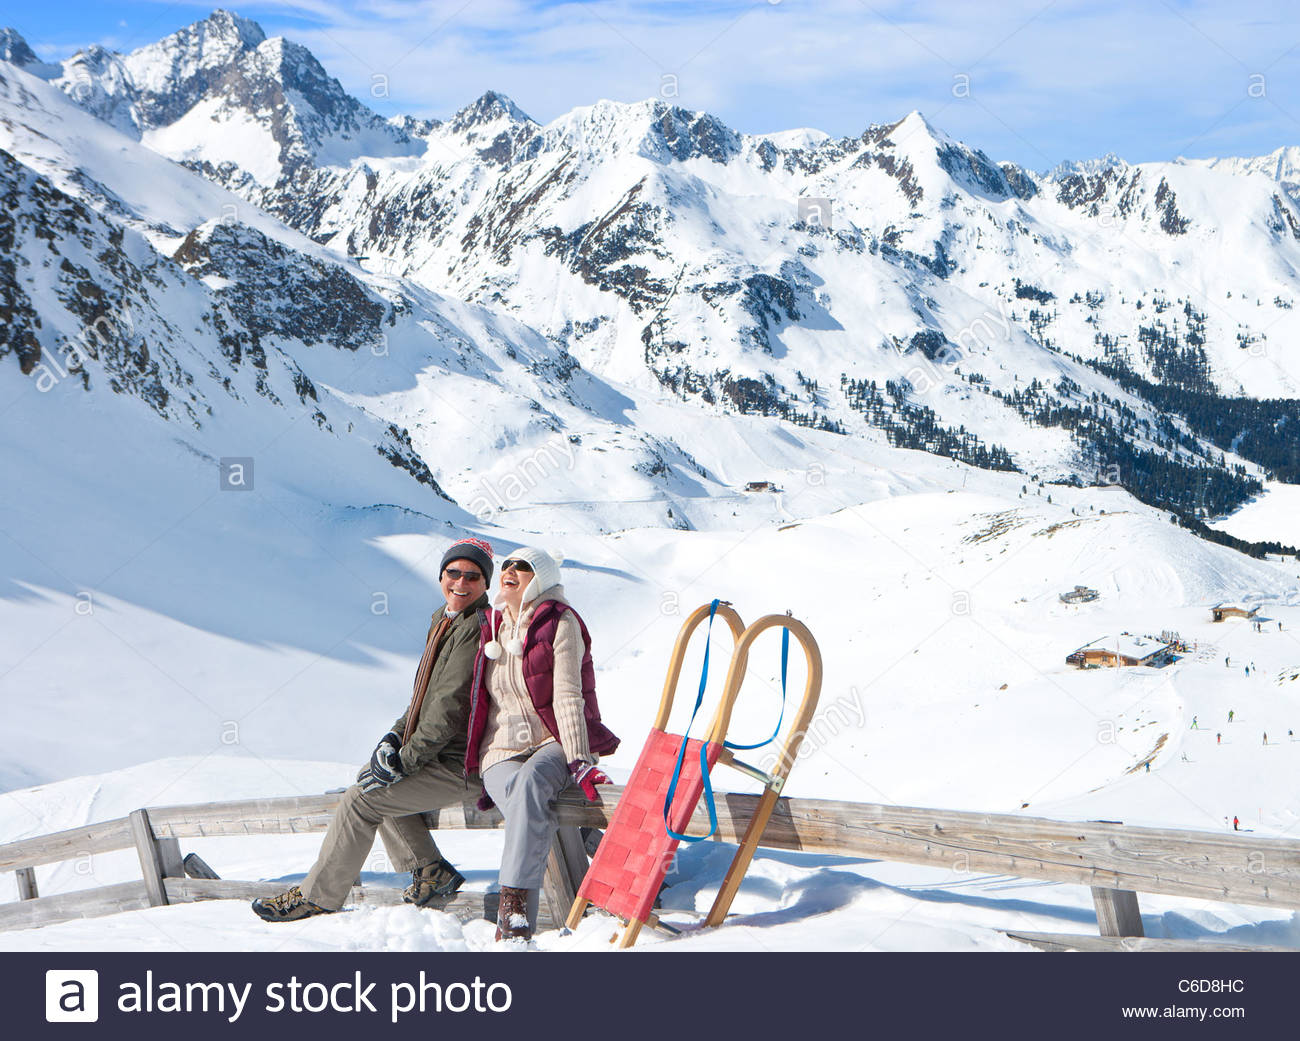 Smiling senior couple with sled siting on fence on snowy mountain - Stock Image